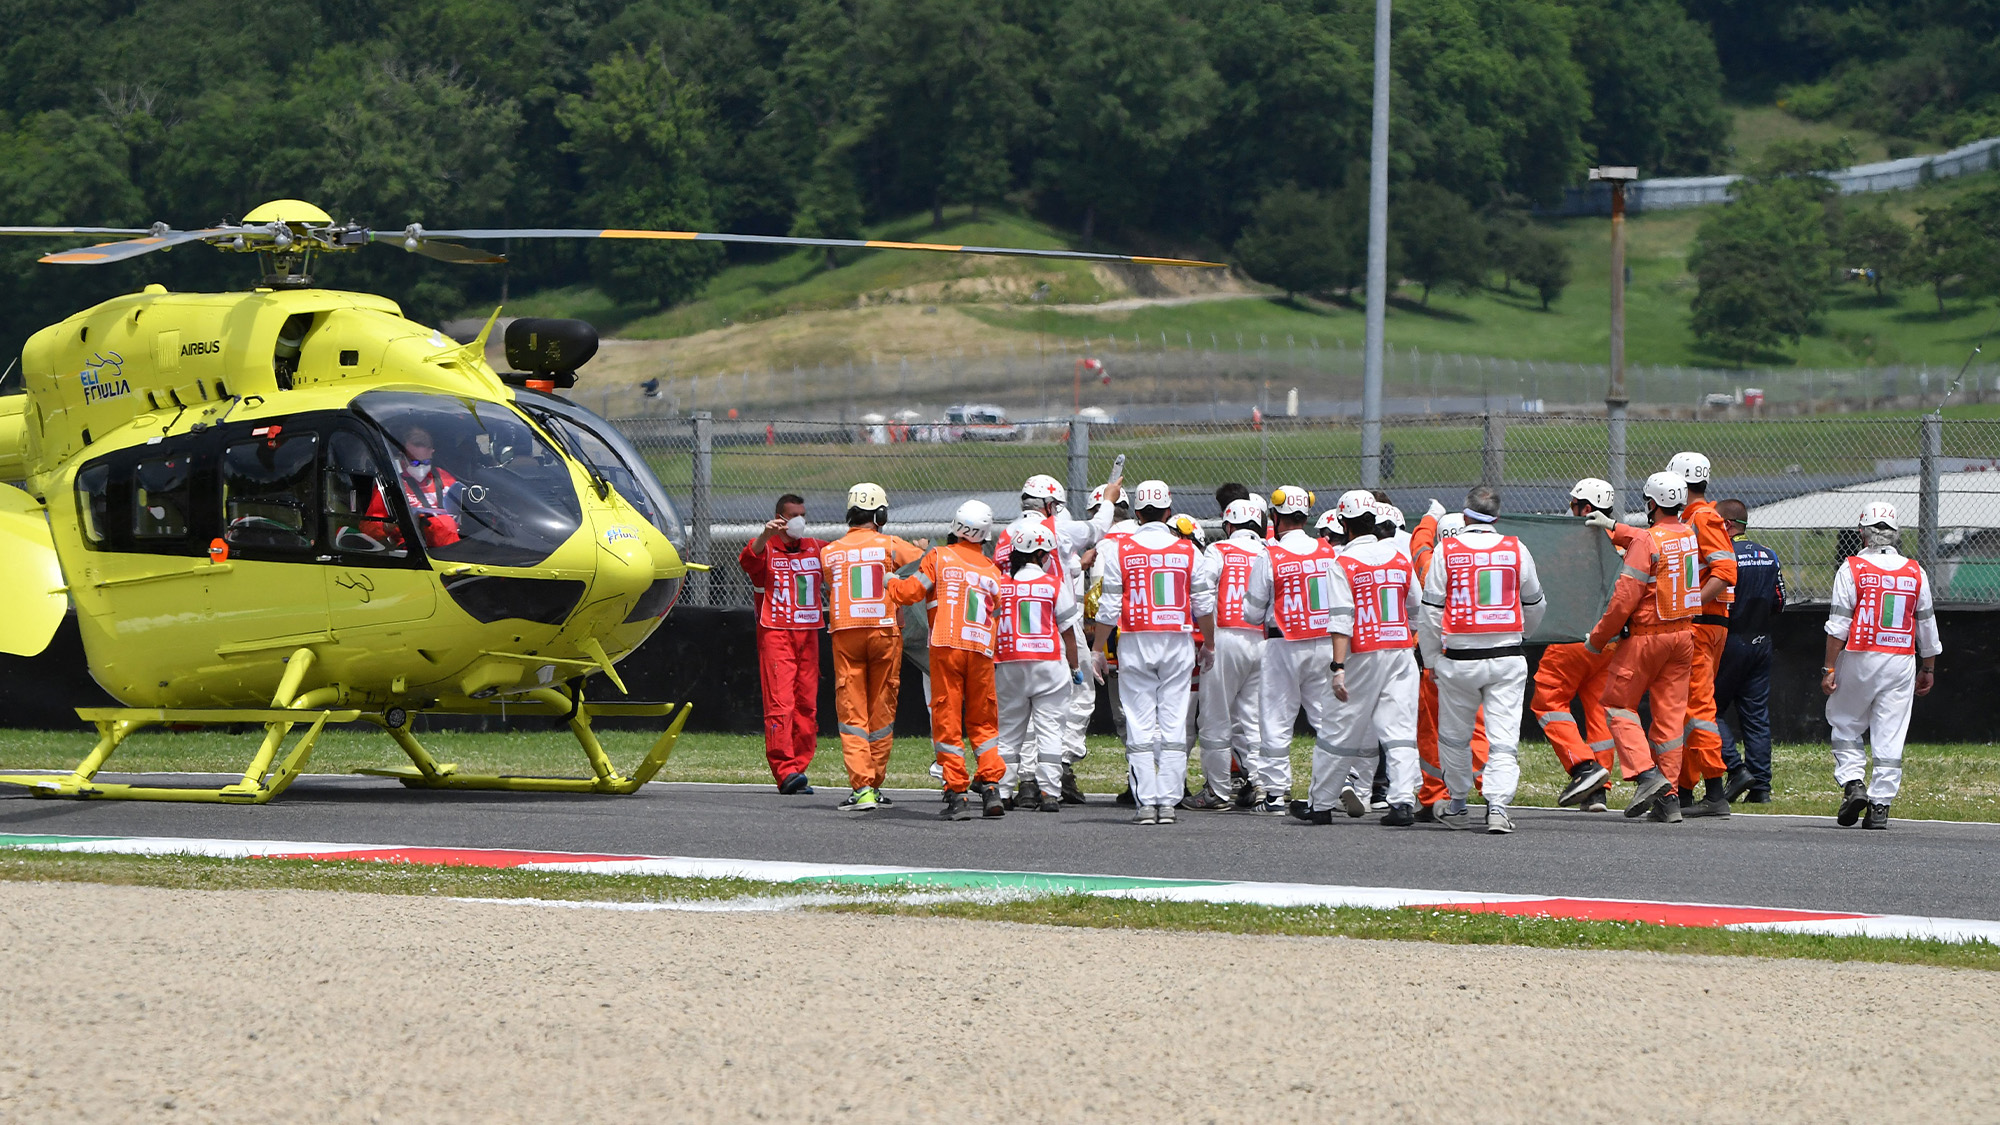 Helicopter at Mugello after Jason Dupasquier fatal crash in 2021